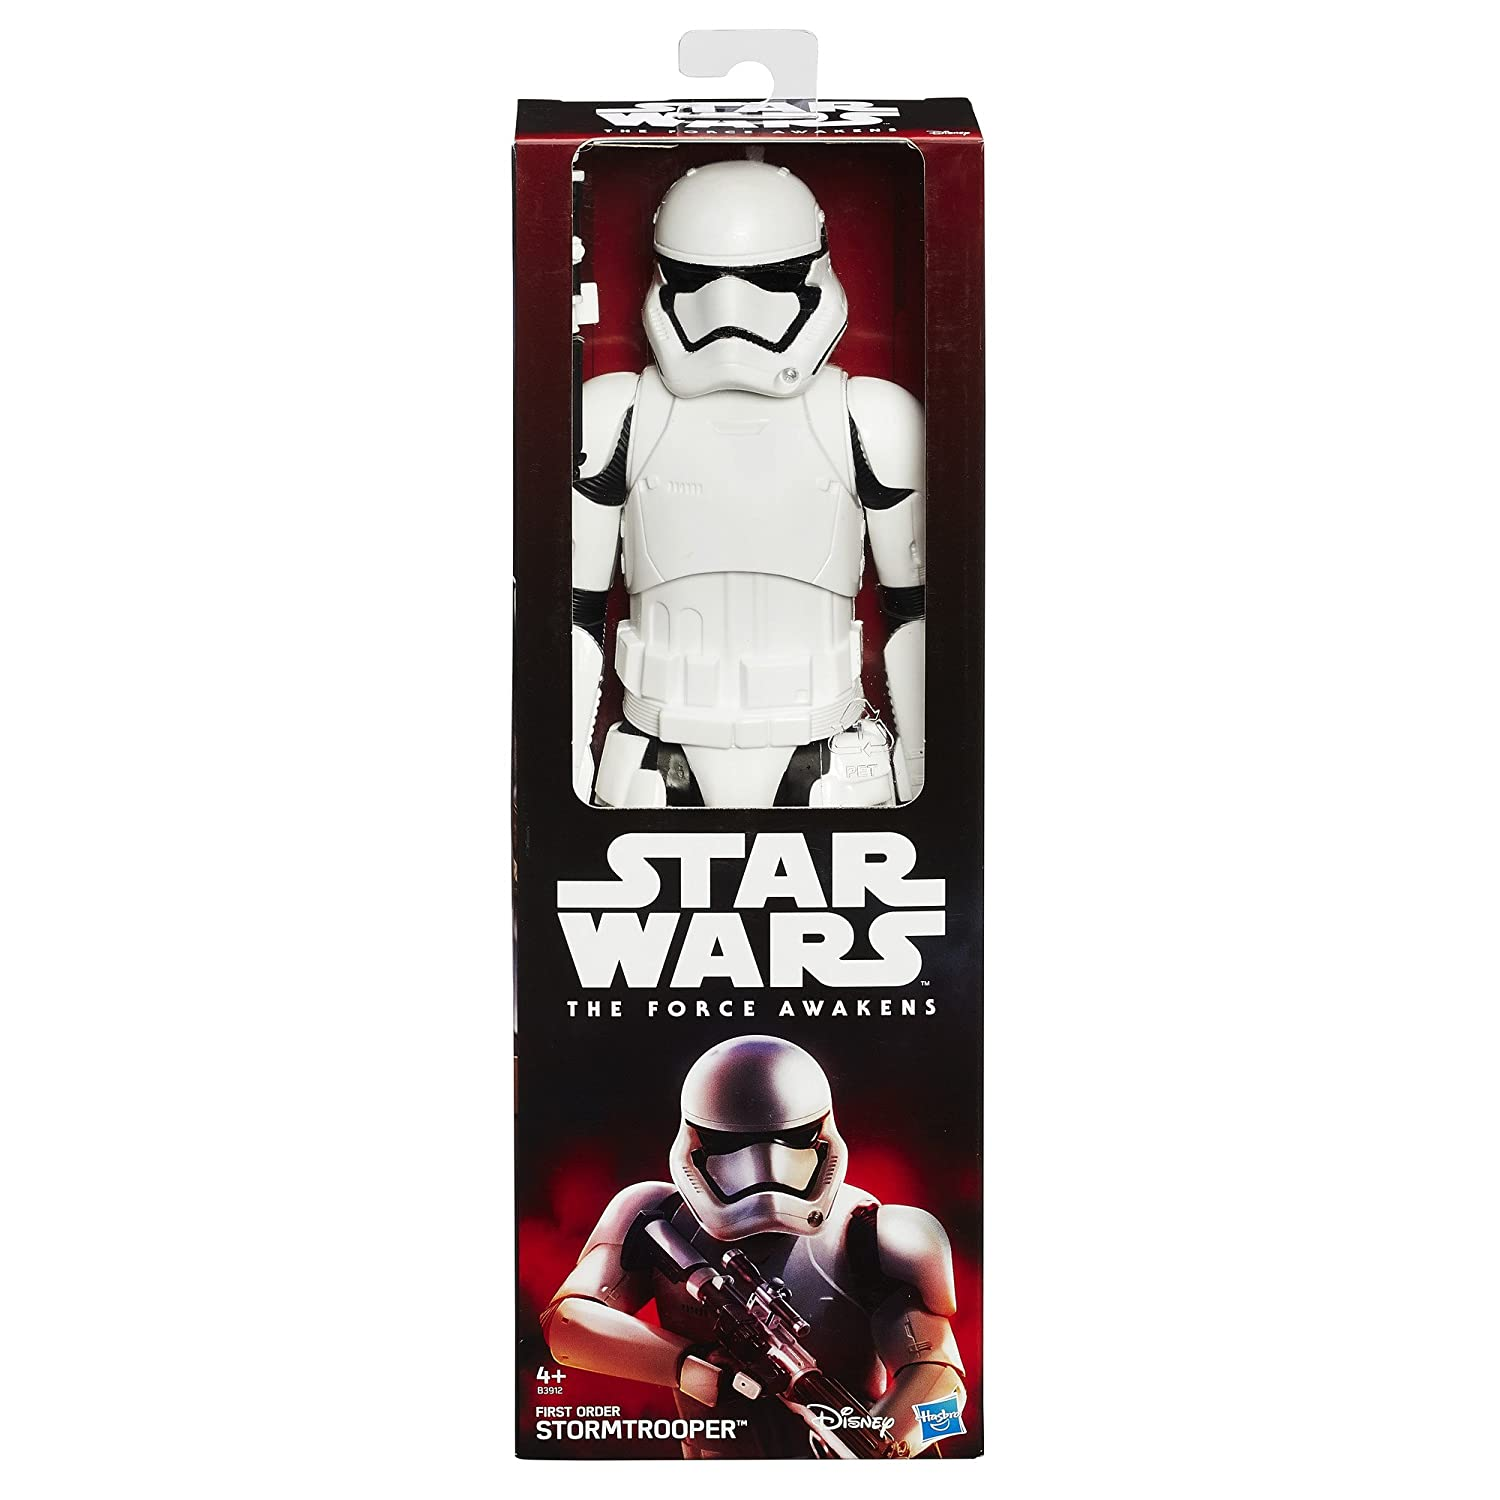 Star Wars The Force Awakens 12-Inch Figure First Order Stormtrooper Review 1fddeb888